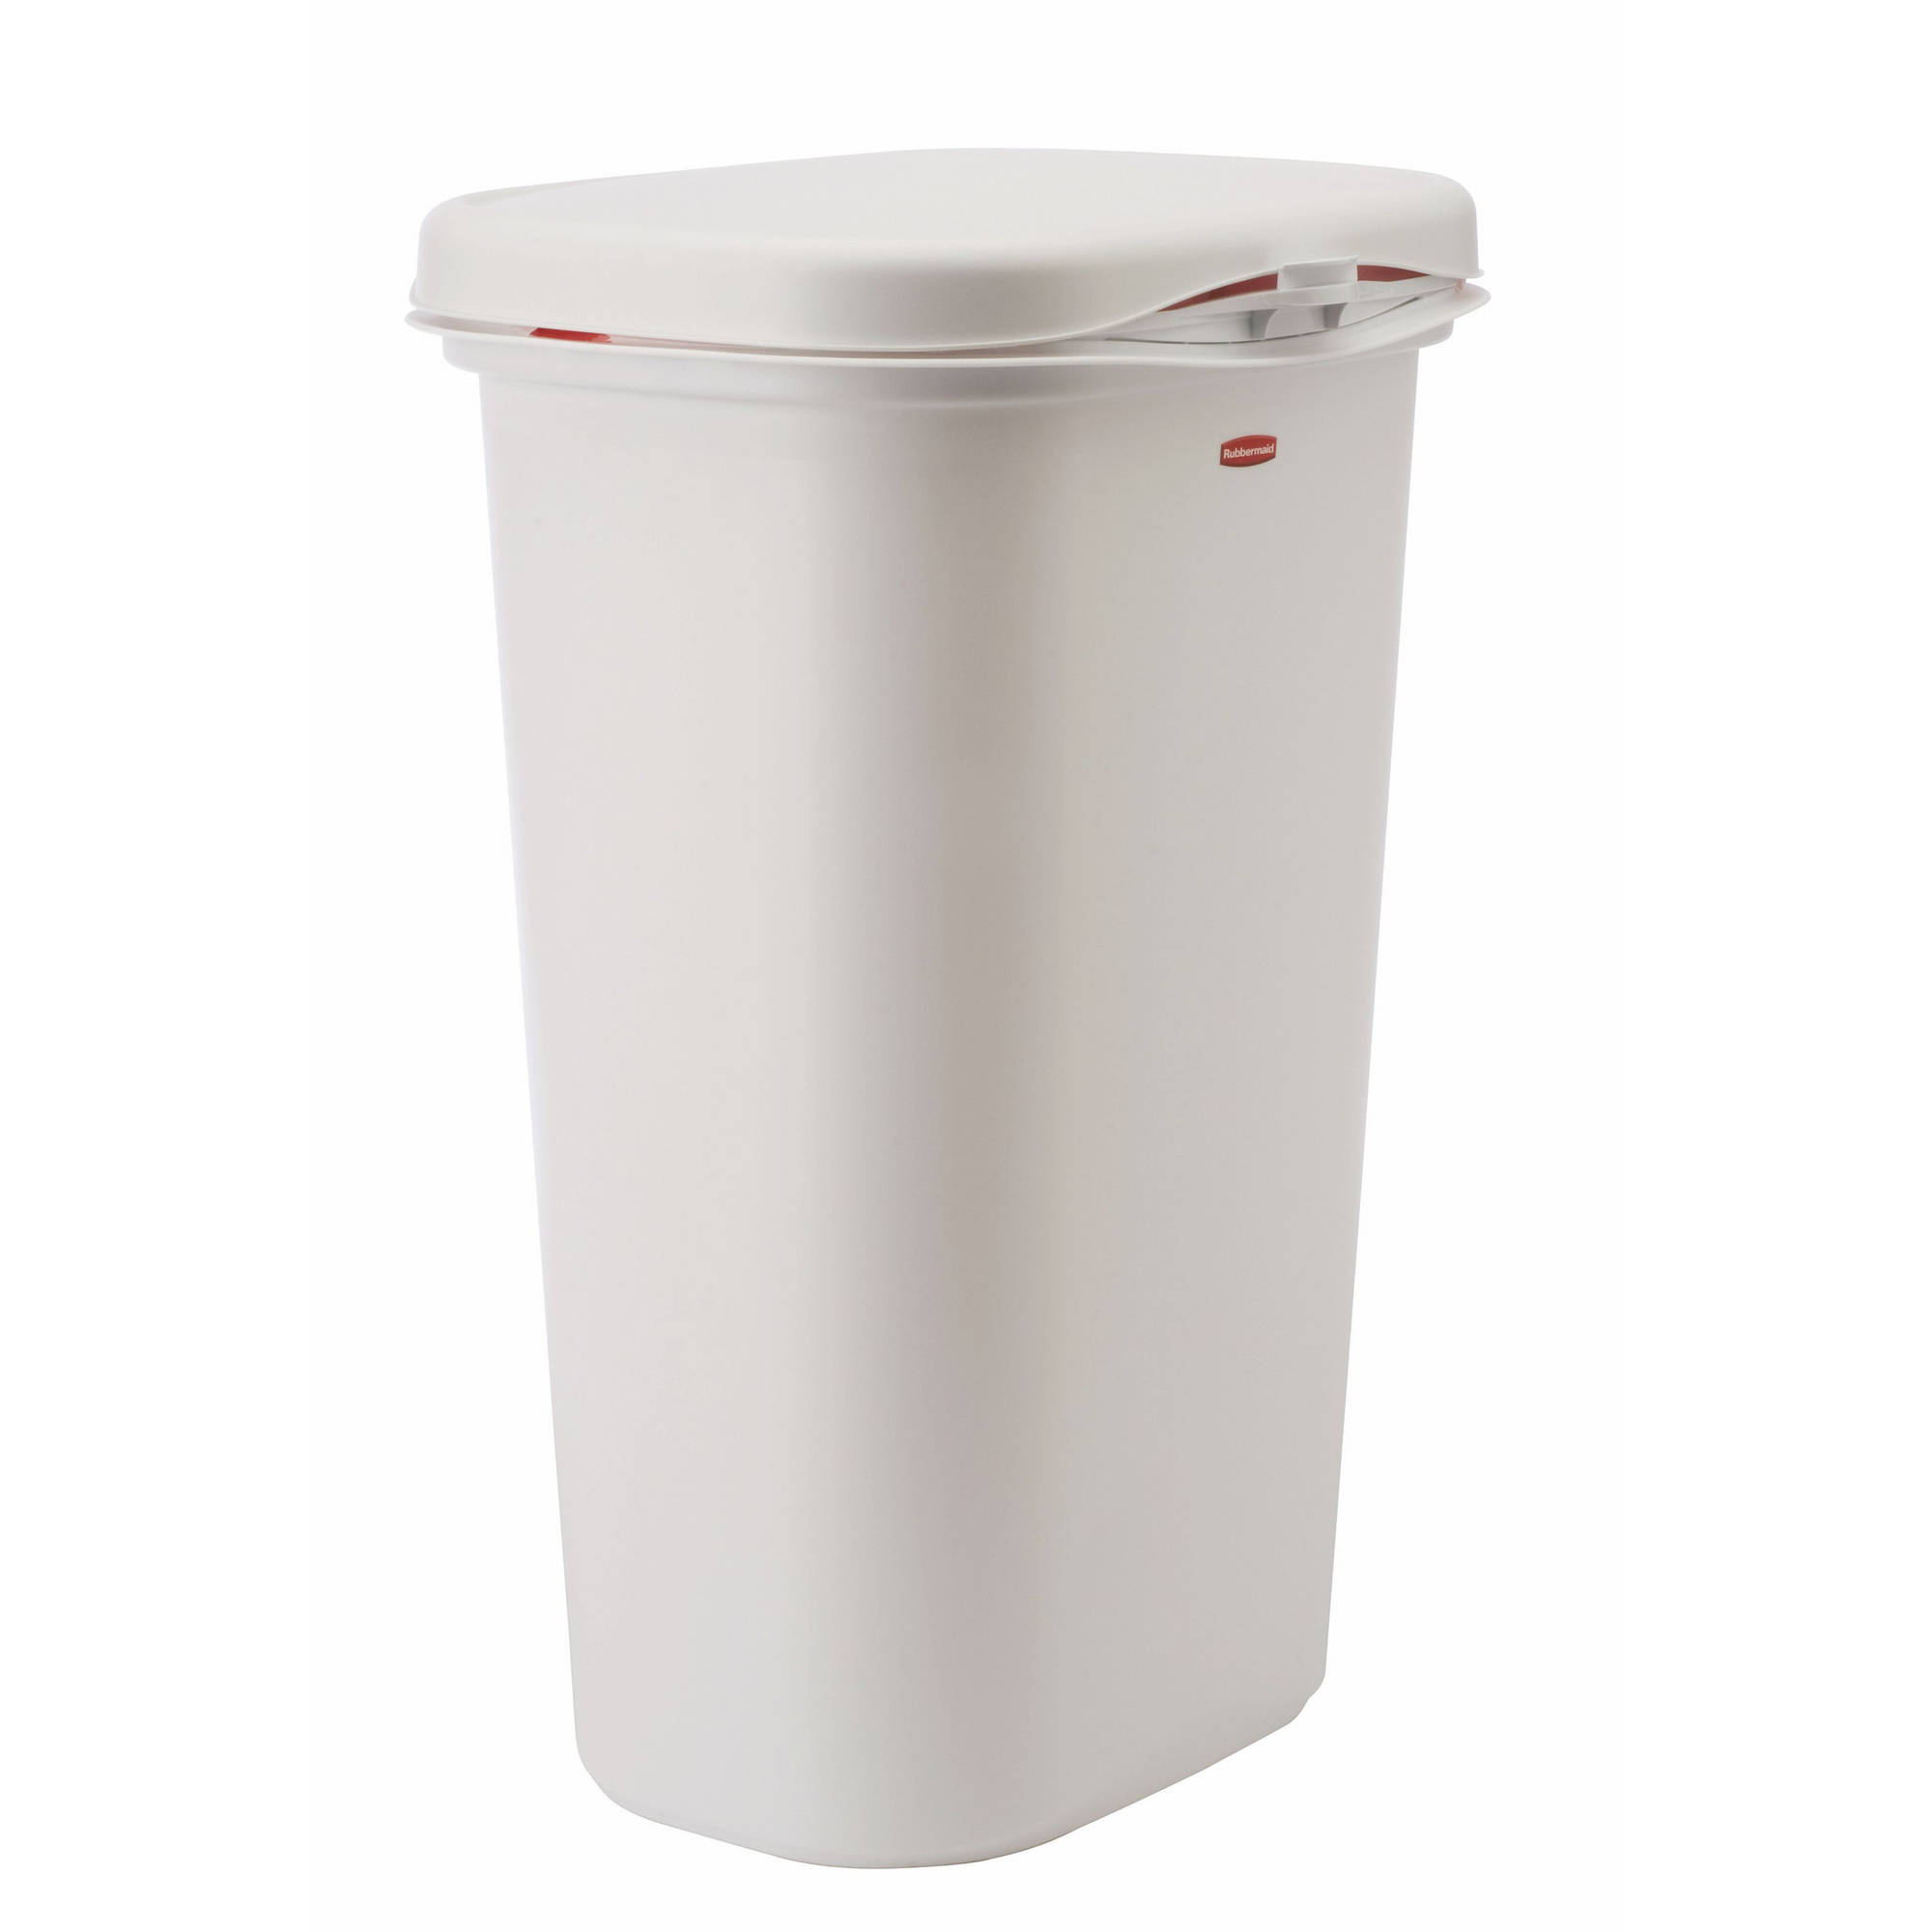 white kitchen trash can outdoor cabinets stainless steel rubbermaid linerlock spring top 13 gal